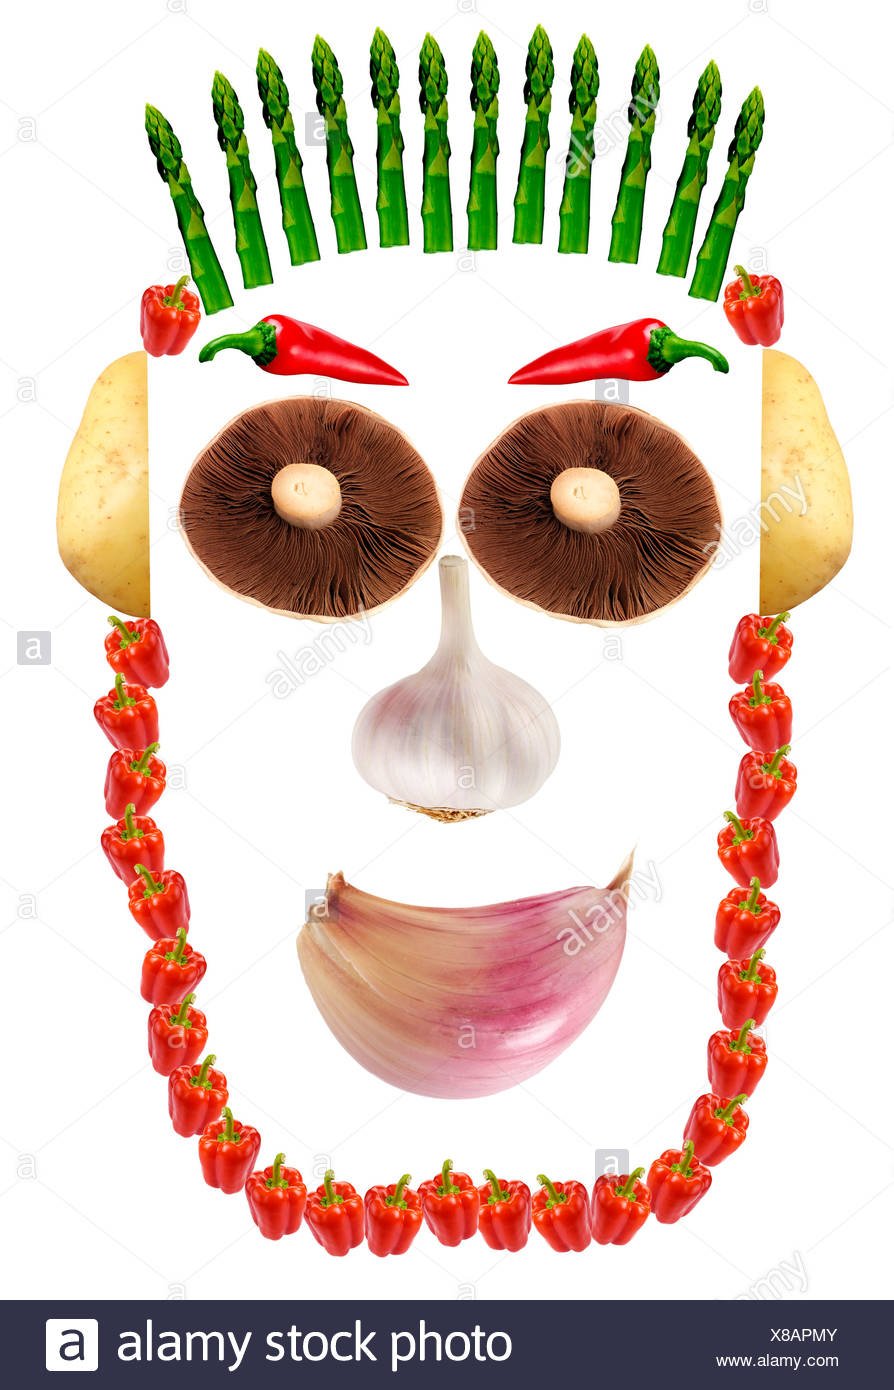 VEGETABLE FACE ON WHITE - Stock Image